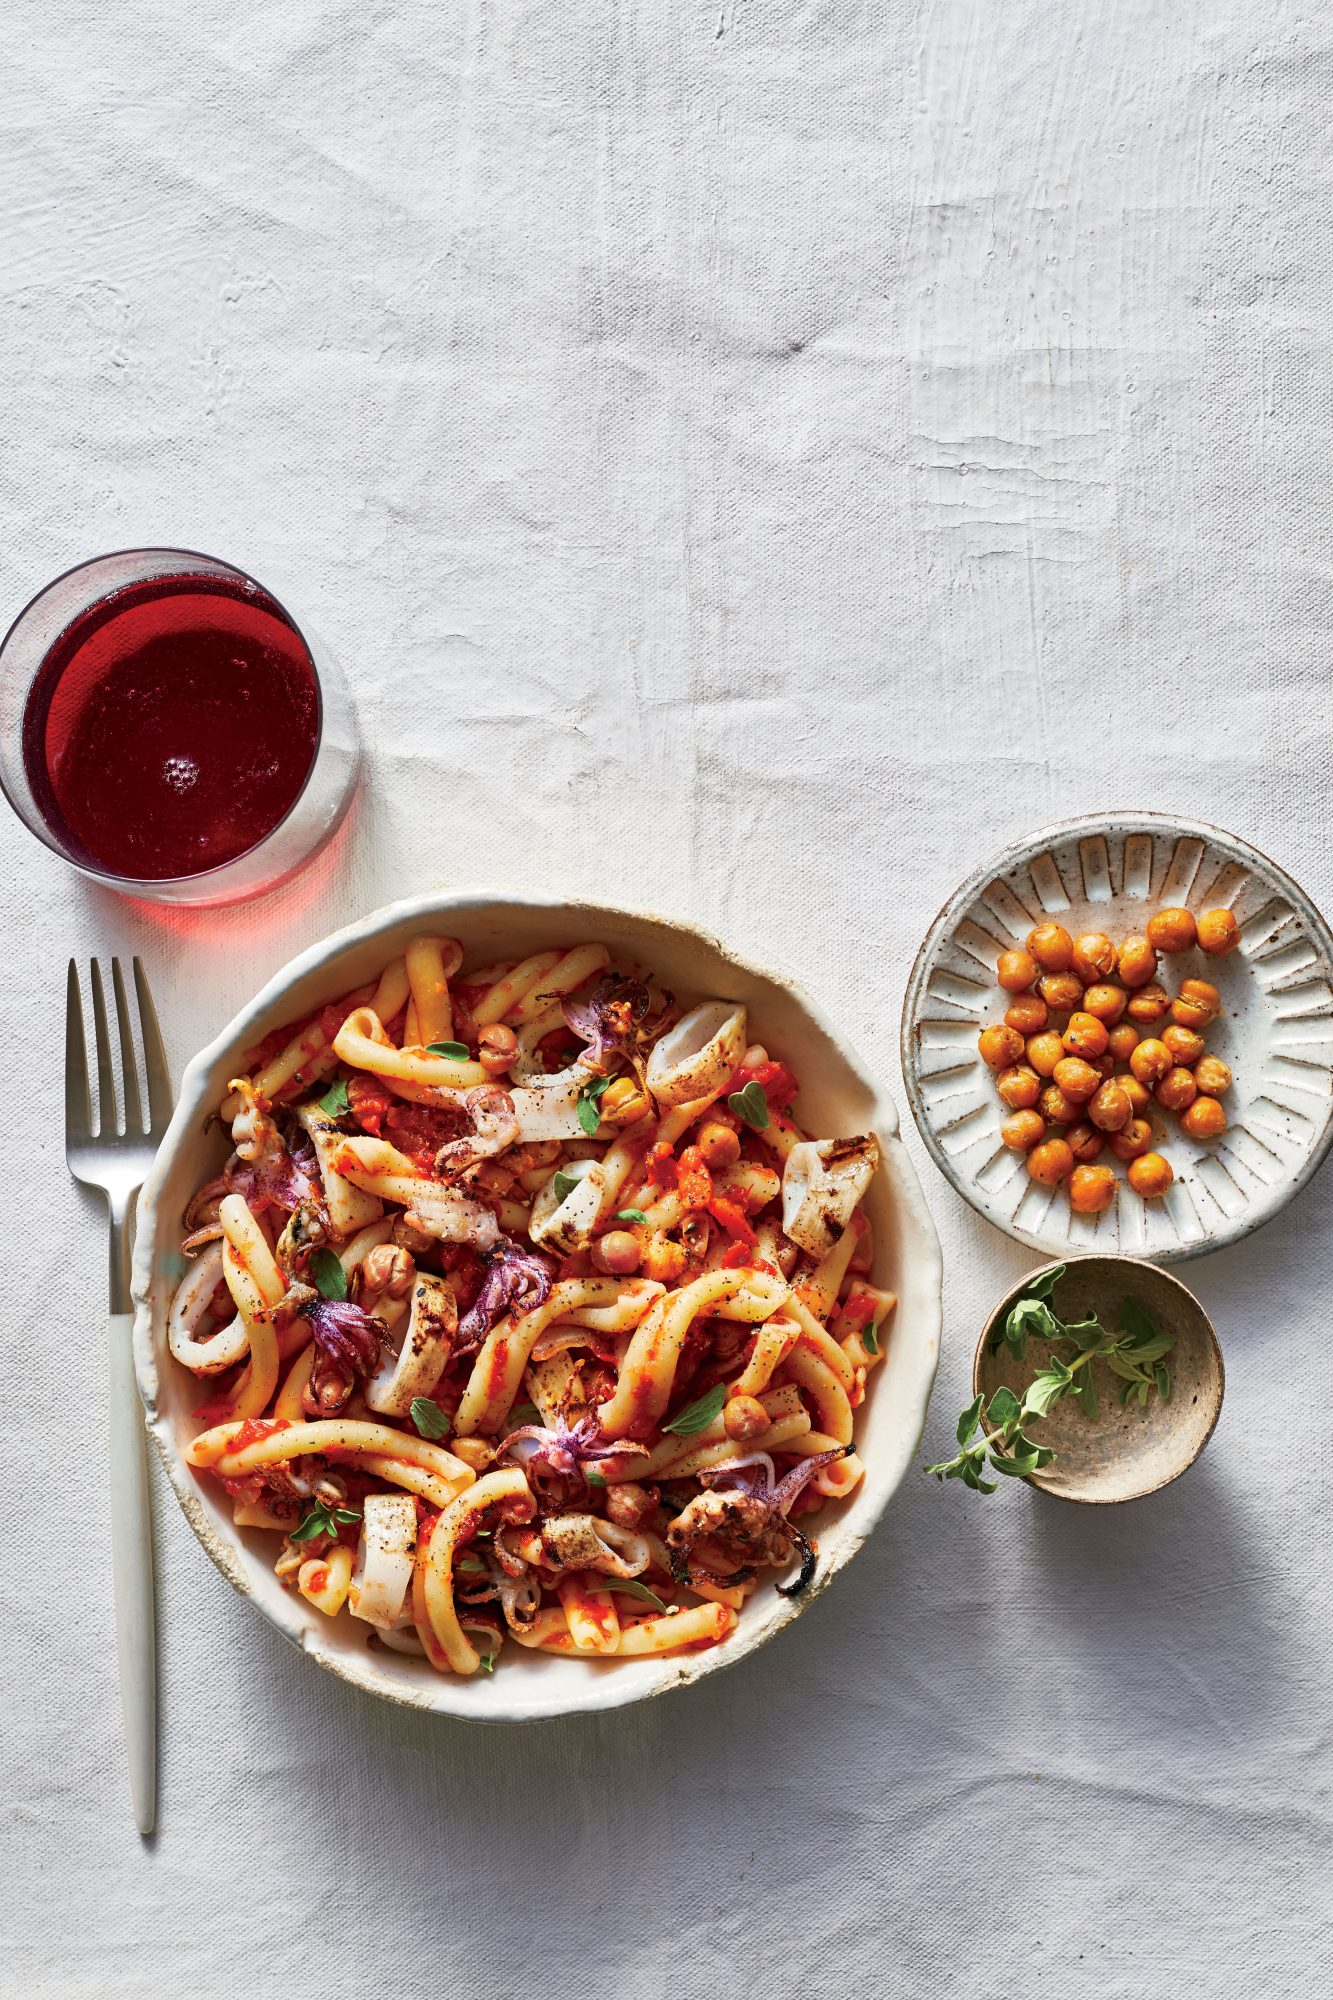 Strozzapreti with Grilled Calamari, Roasted Tomato Sauce, and Crispy Chickpeas